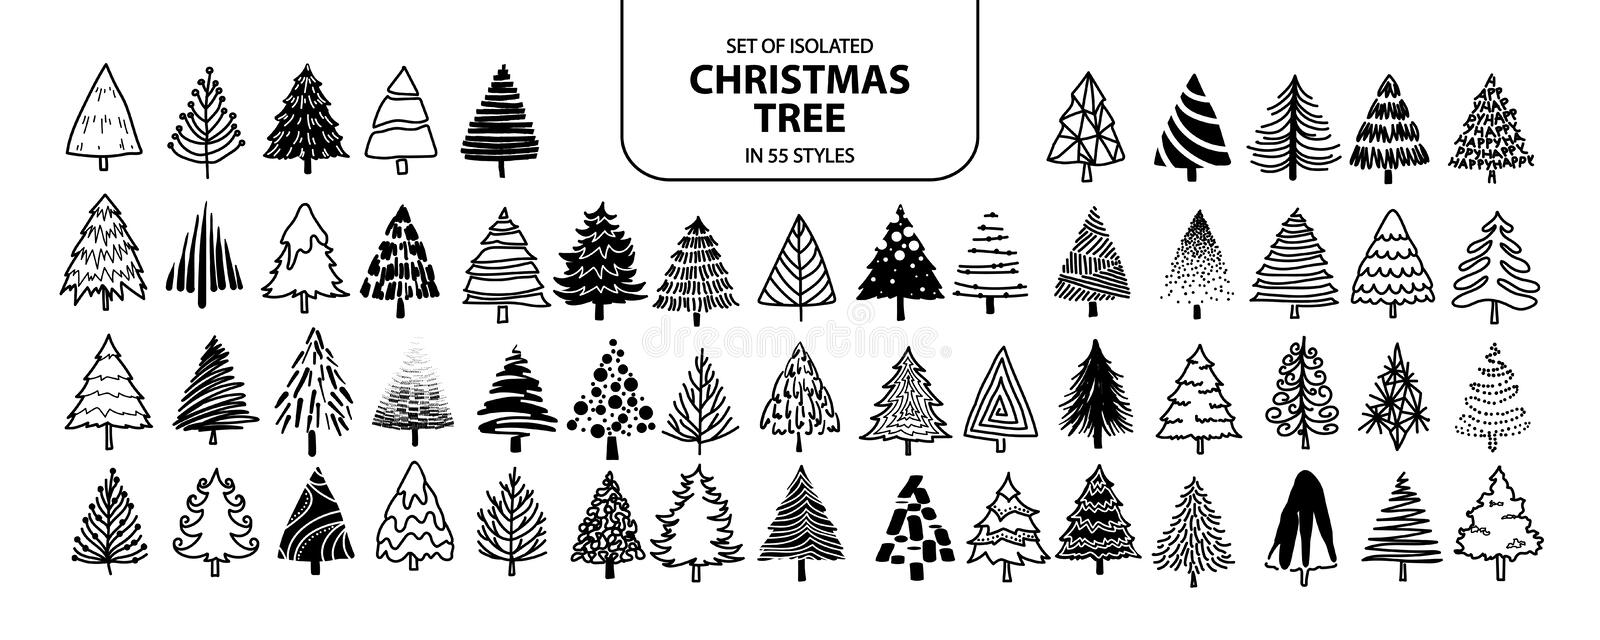 Set of isolated Christmas tree in 55 styles stock illustration